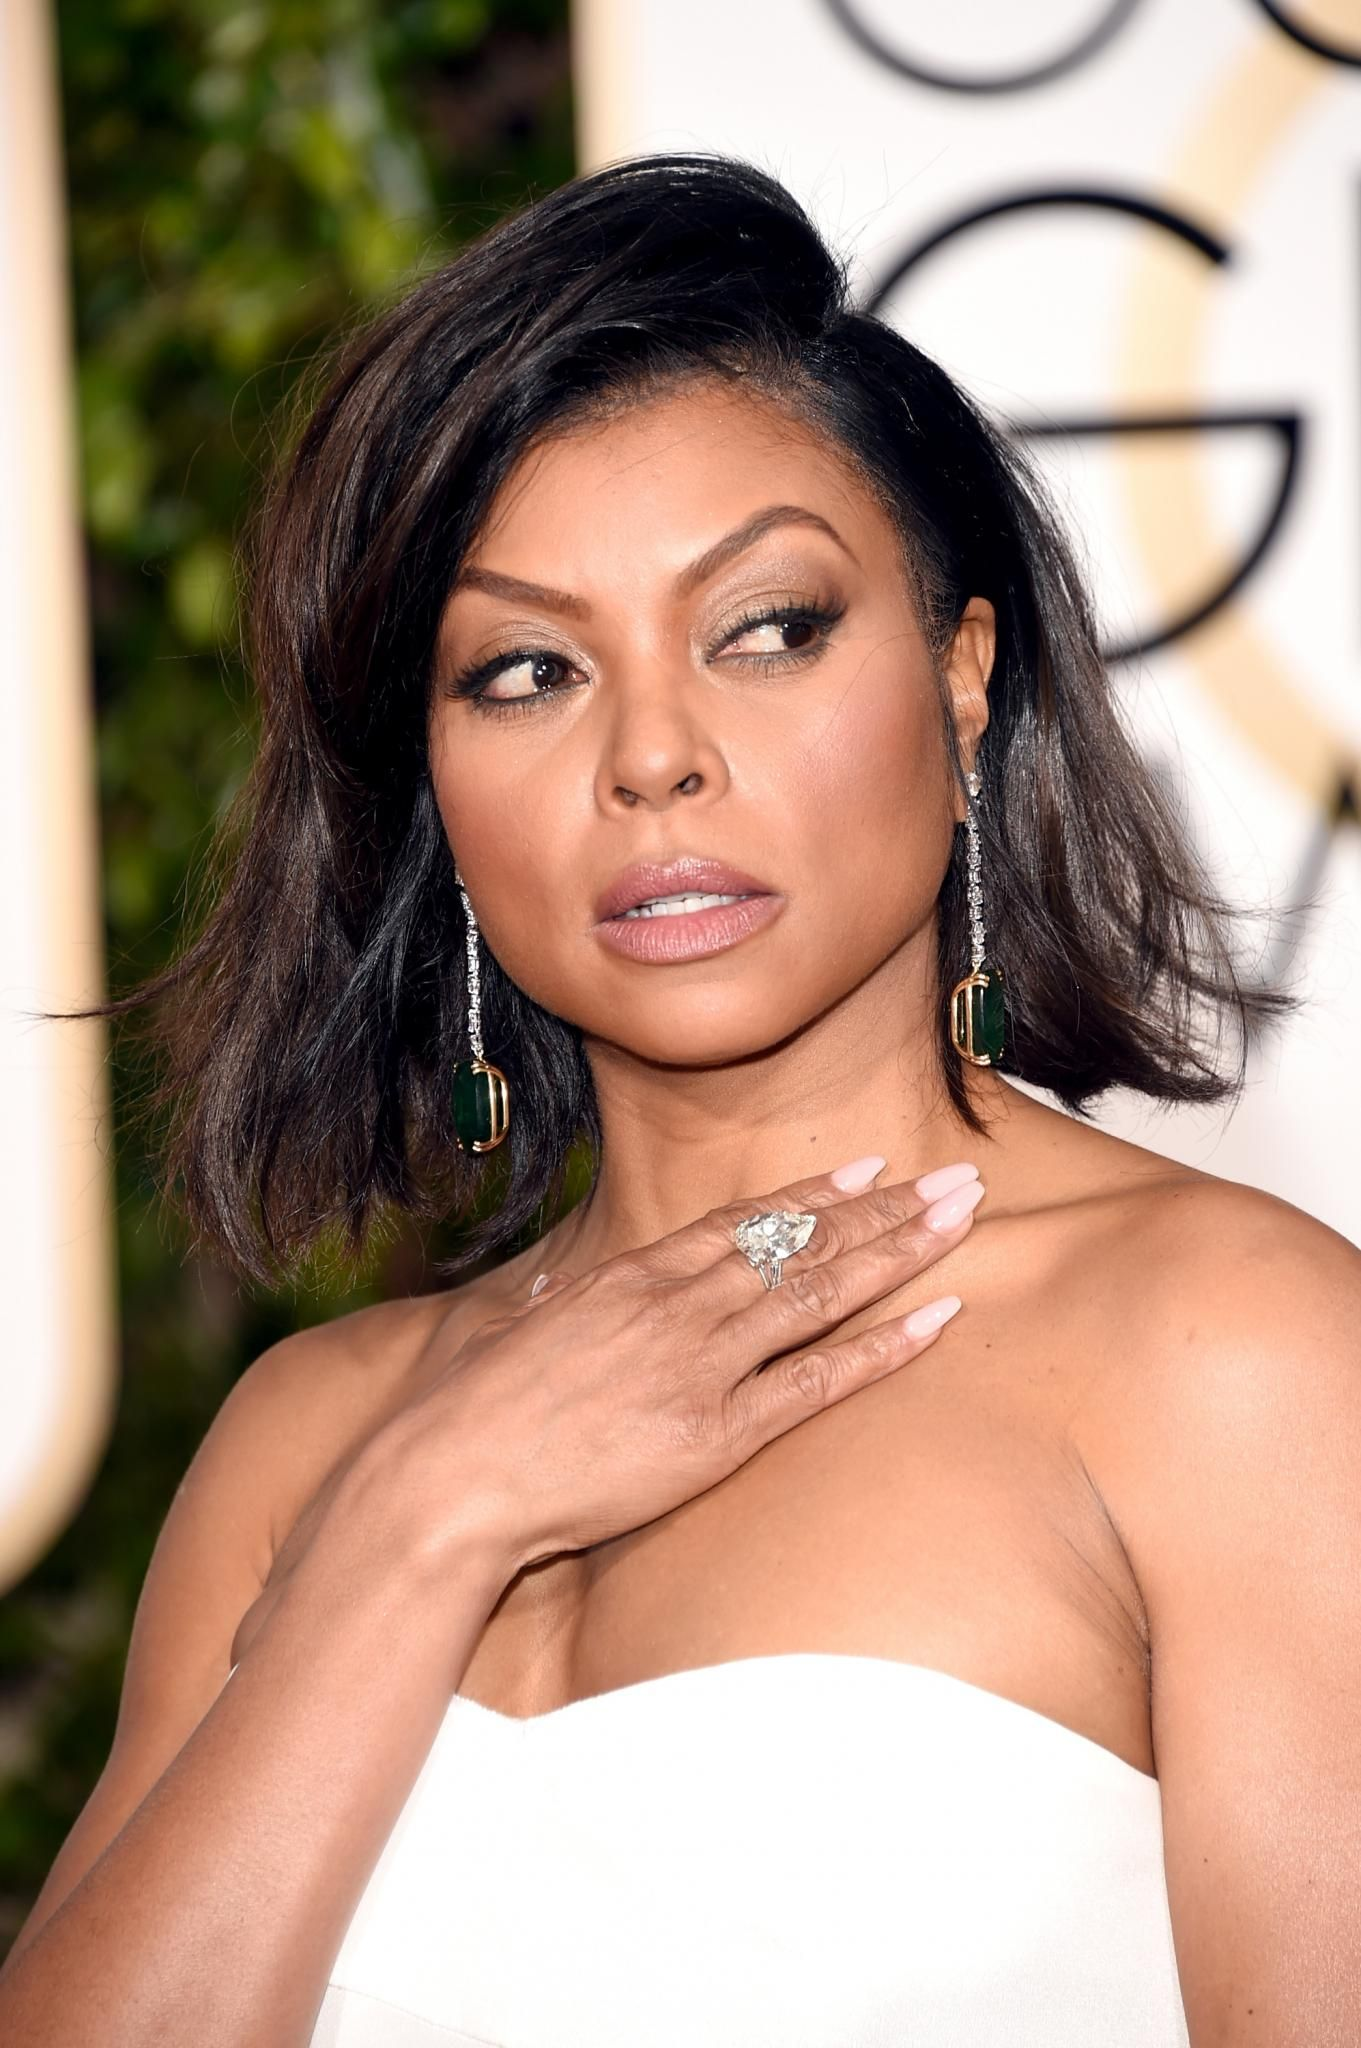 """This look is not only chic, but sexy and effortless; perfect for anyone who wants to play as a goddess for the night,"" says makeup artist Ashunta Sheriff who created Taraji's look with L'Oreal Paris products. from Essence.com"